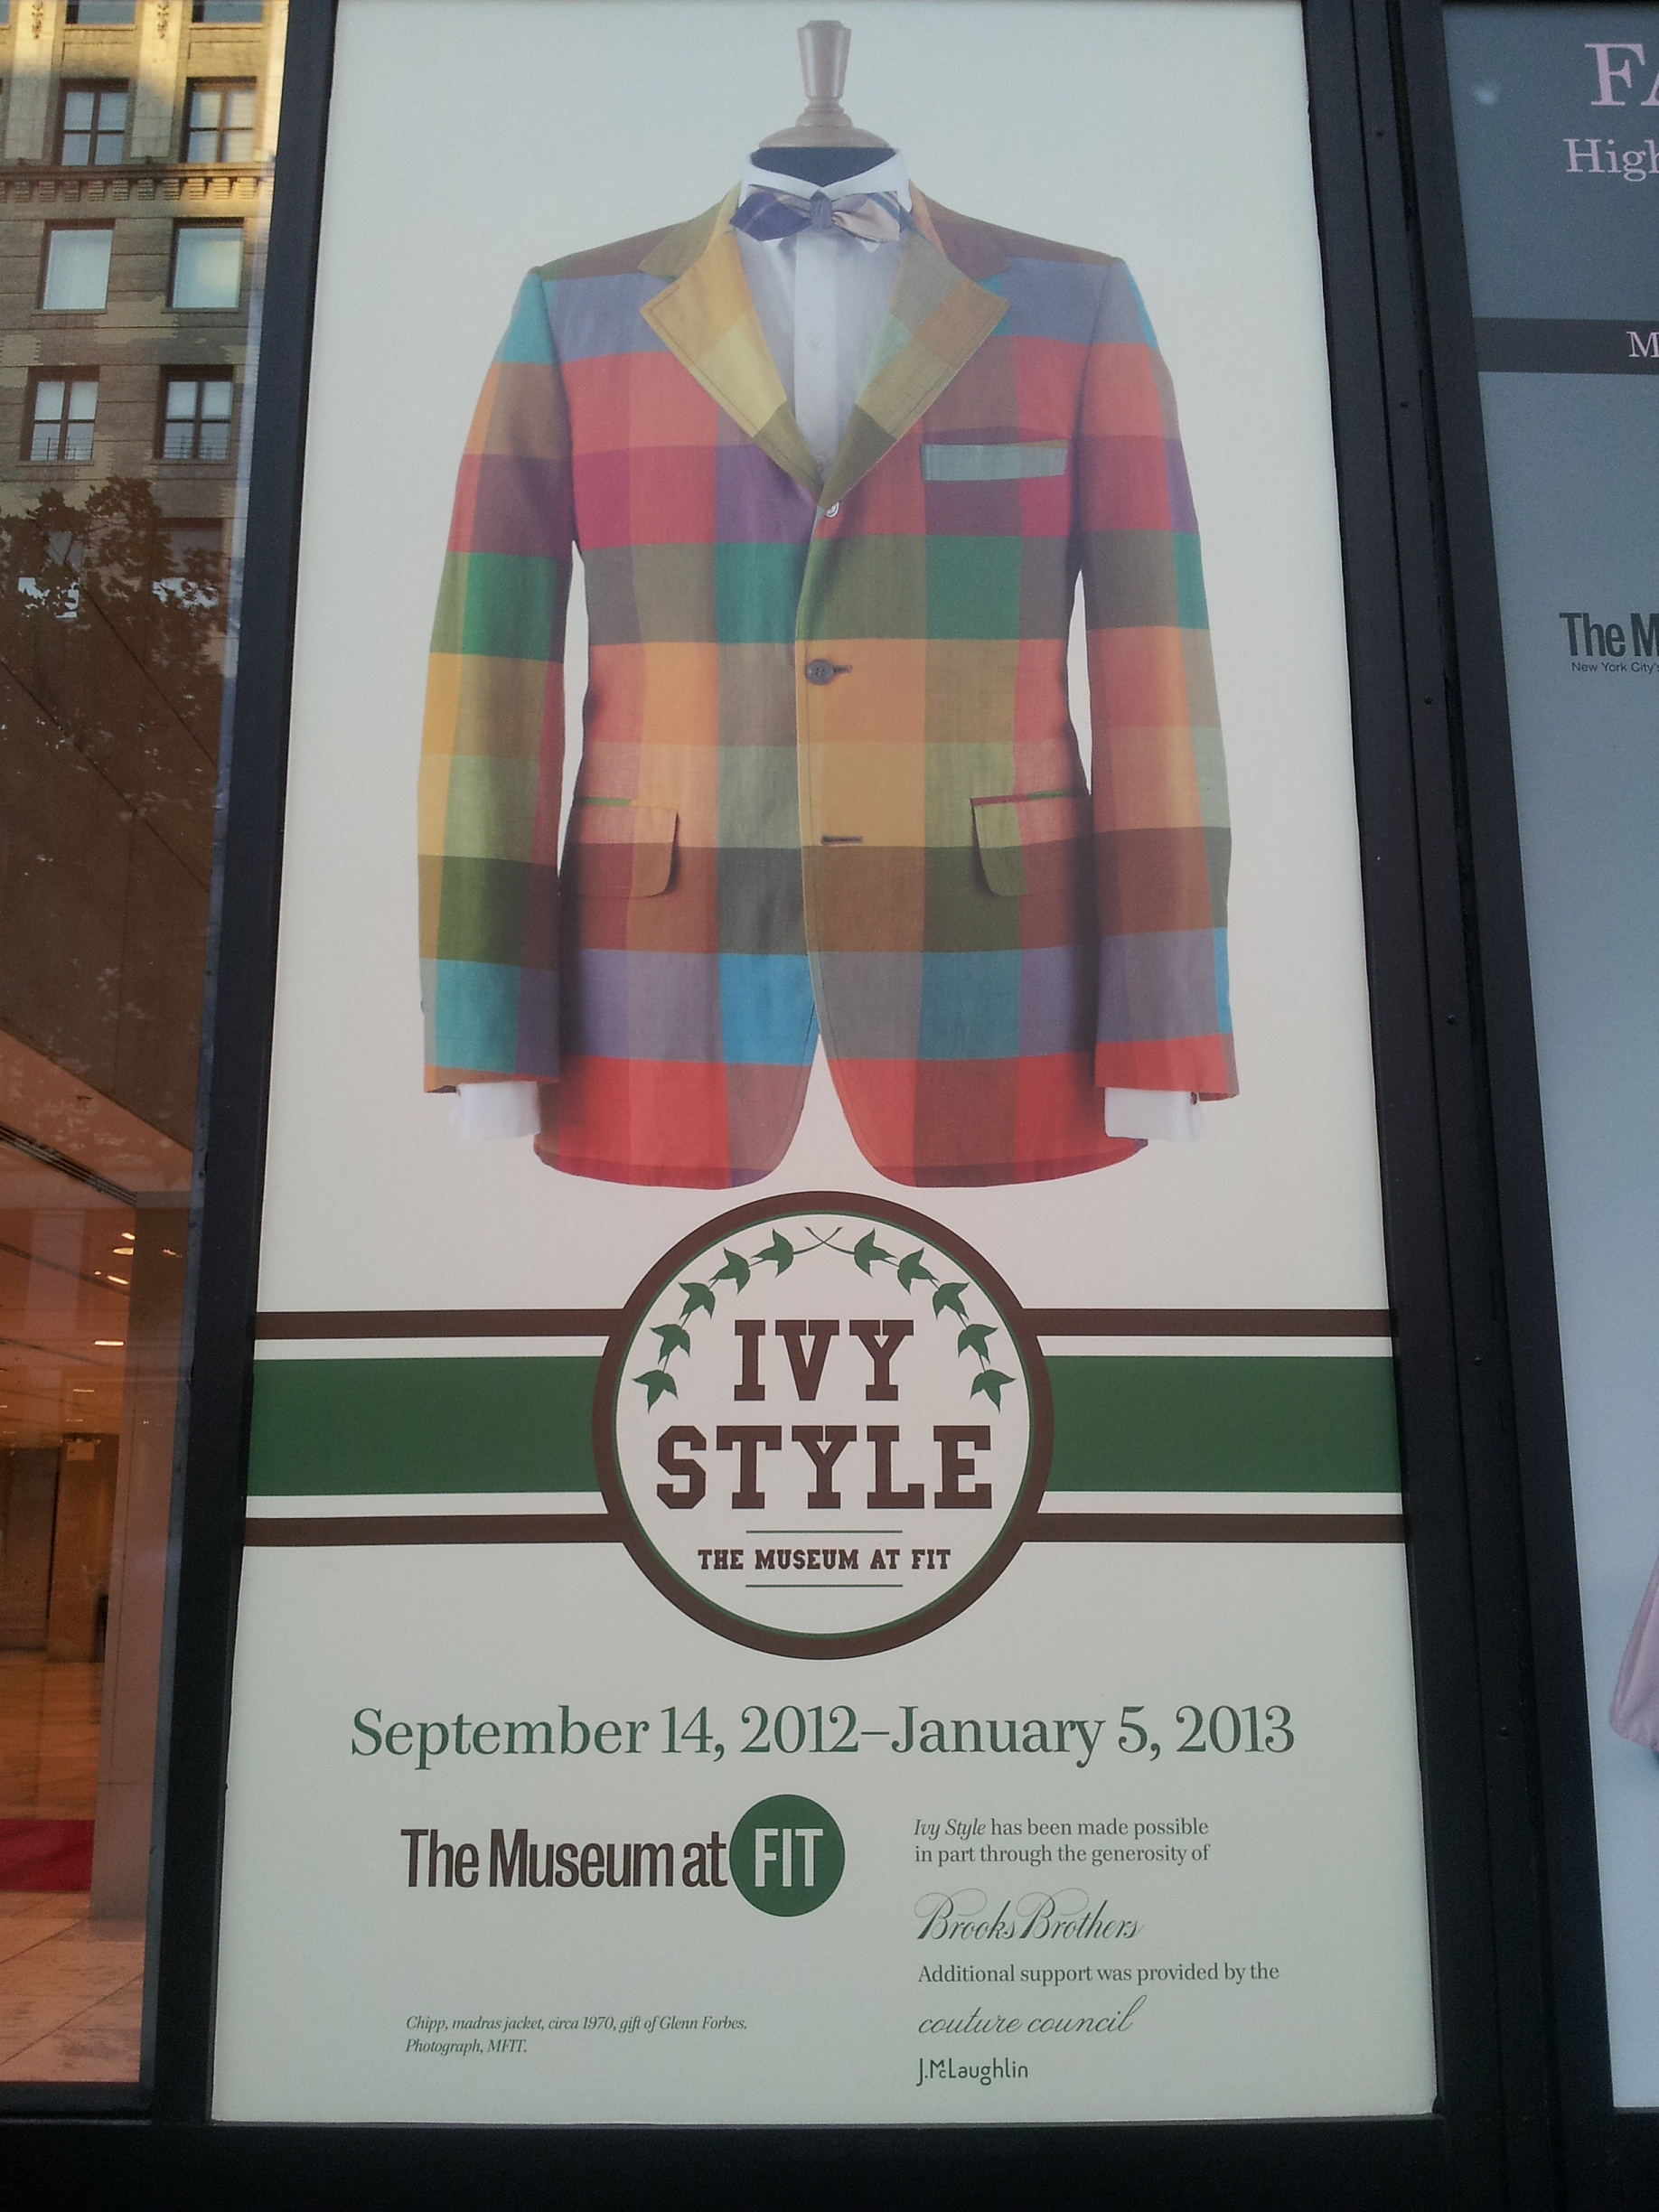 Ivy Style Exhibit: Ivy Style at Fashion Institute of Technology Museum (NYC).